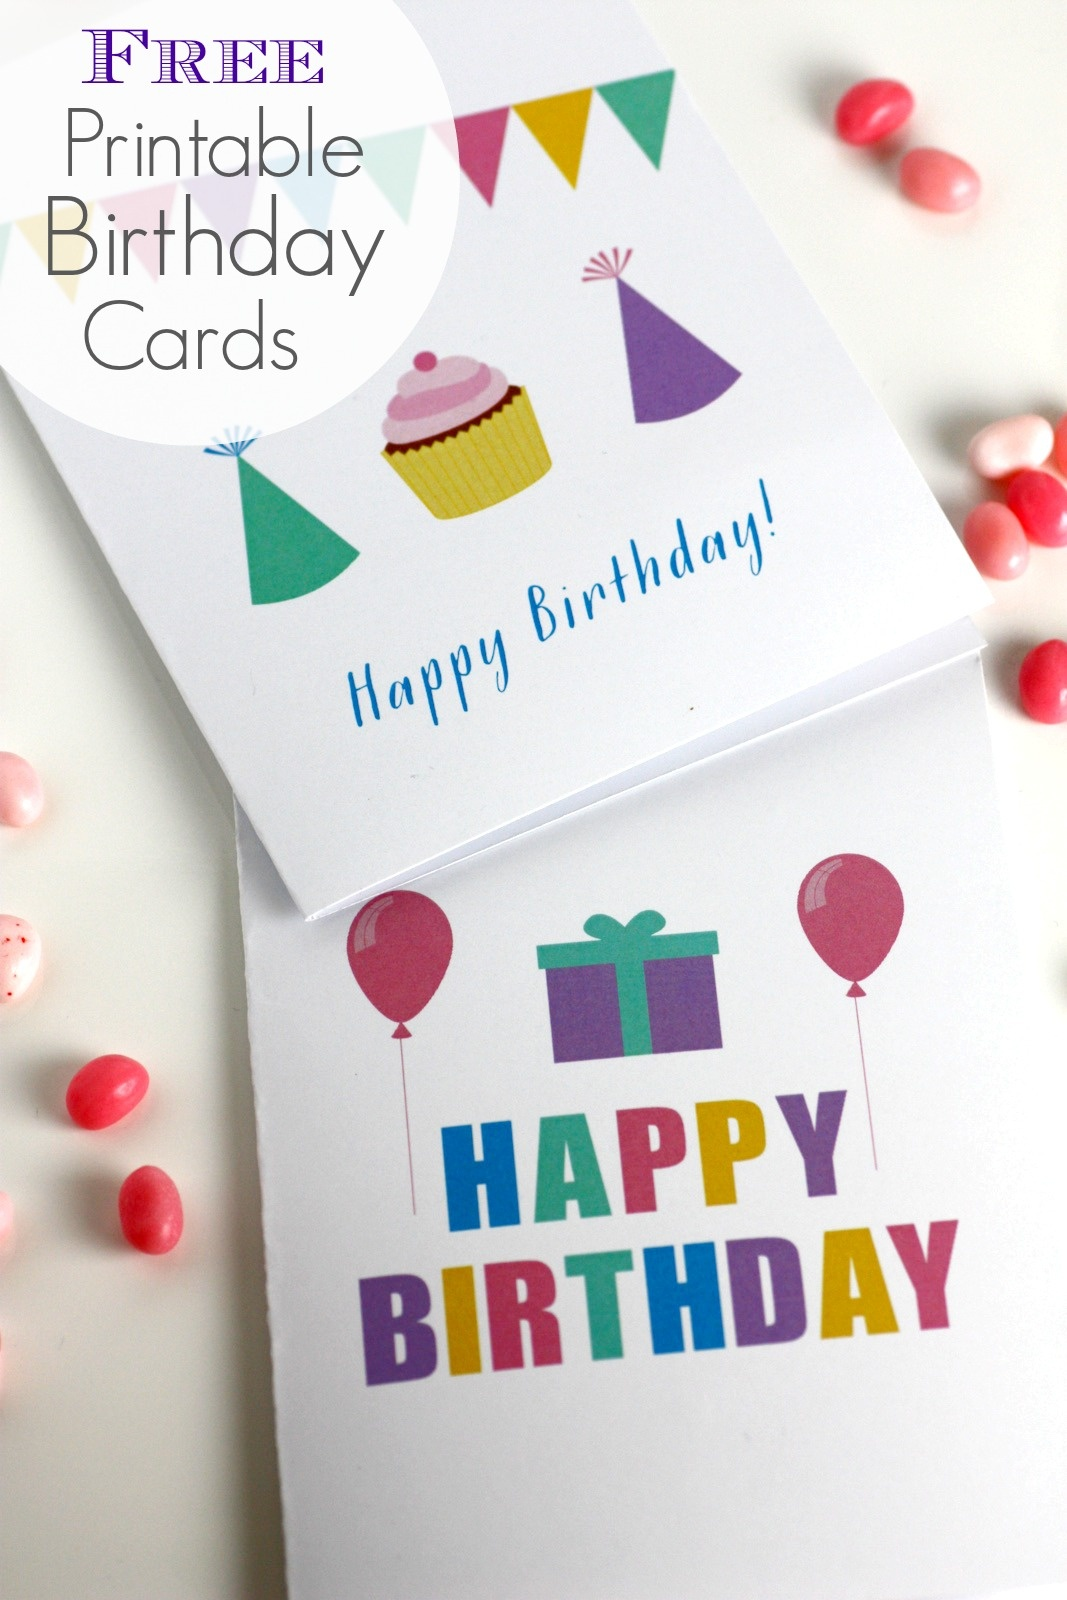 Free Printable Blank Birthday Cards | Catch My Party - Happy Birthday Free Cards Printable